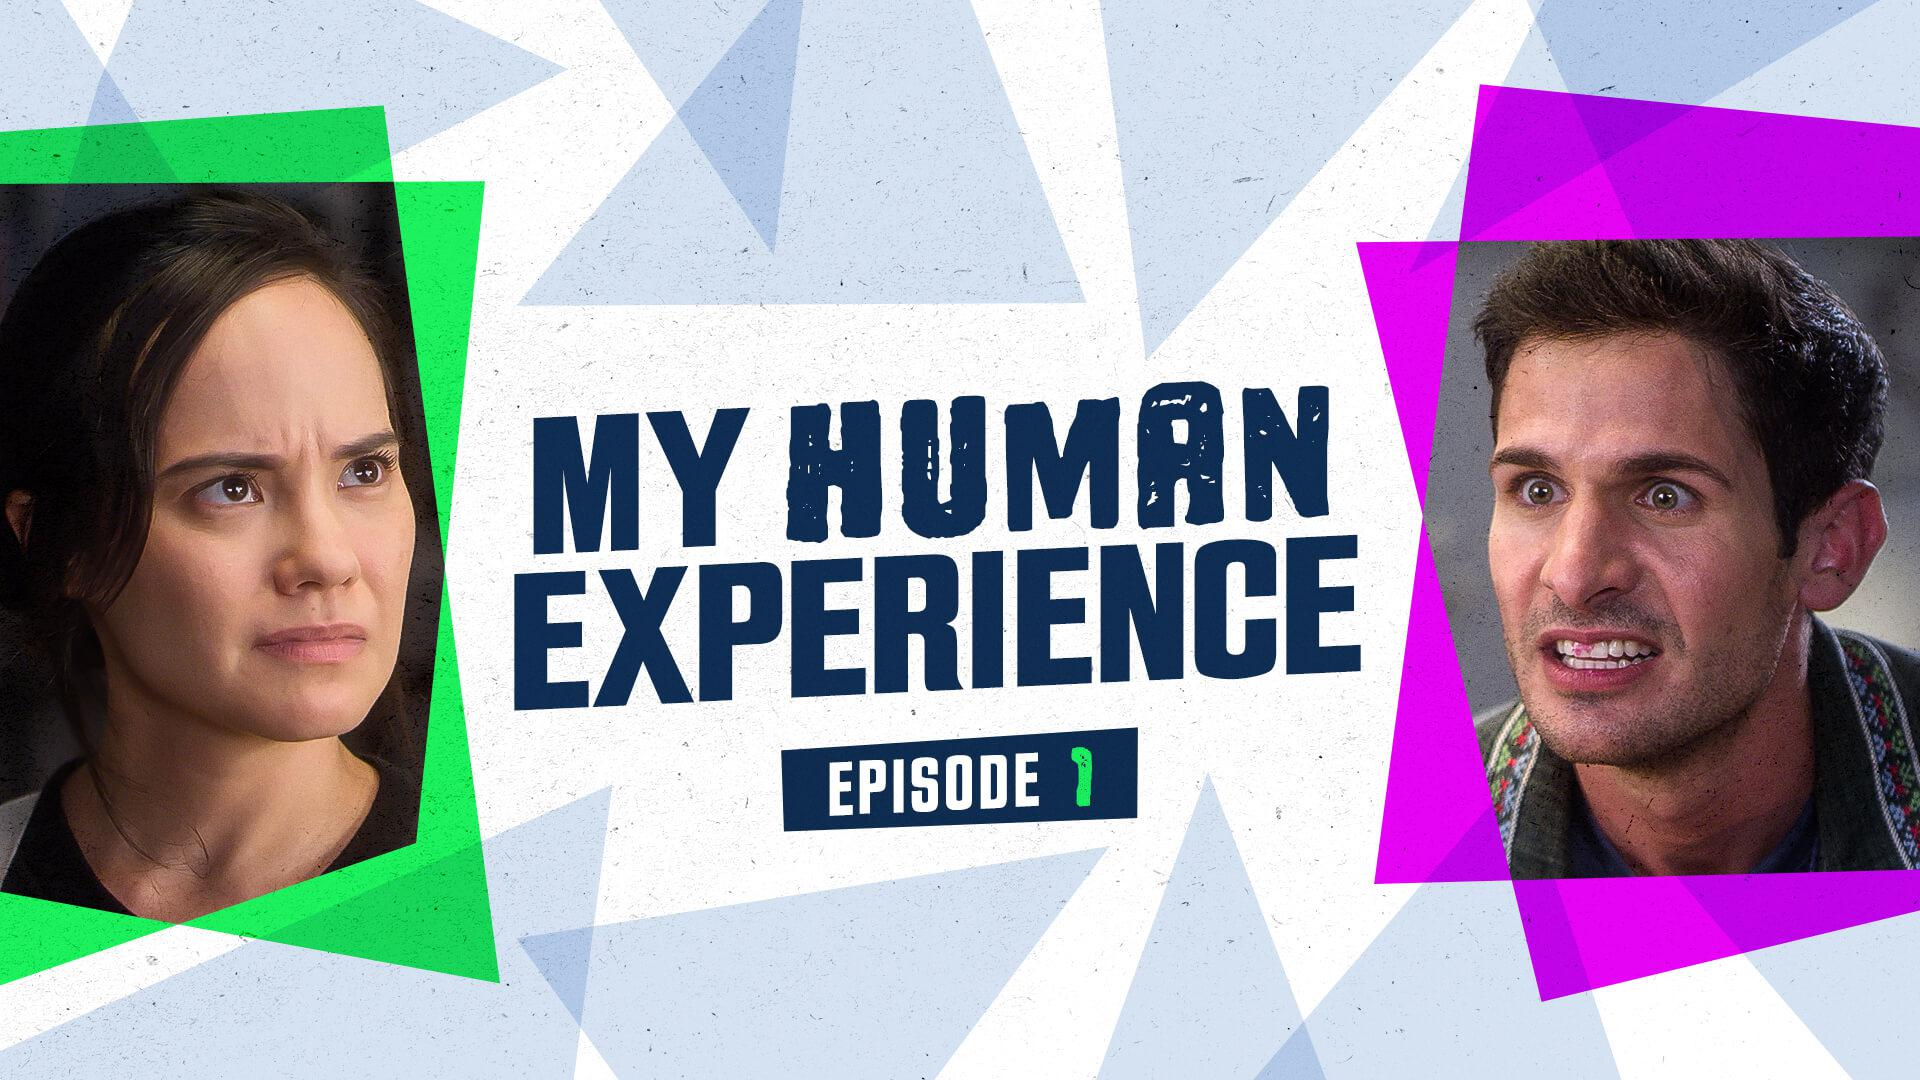 My Human Experience: Episode #1